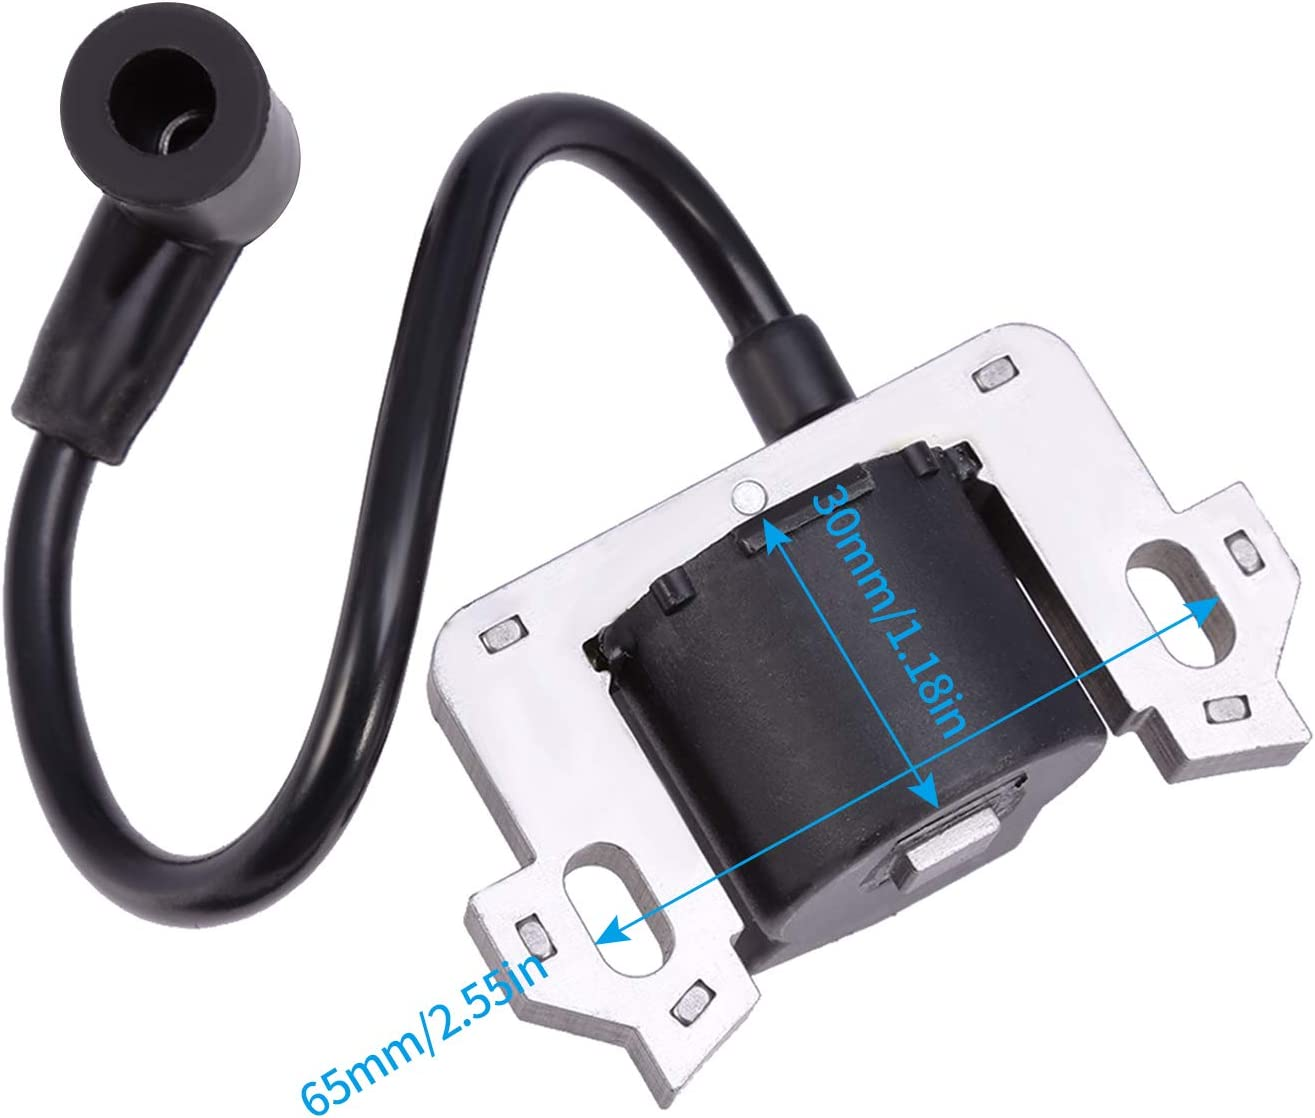 /004 ouyfilters New Brand Replacement Ignition Coil with Spark Plug For Honda gc135/GC160/gc190/gcv135/GCV160/gcv190/REPLACE 0500/17211-zl8/